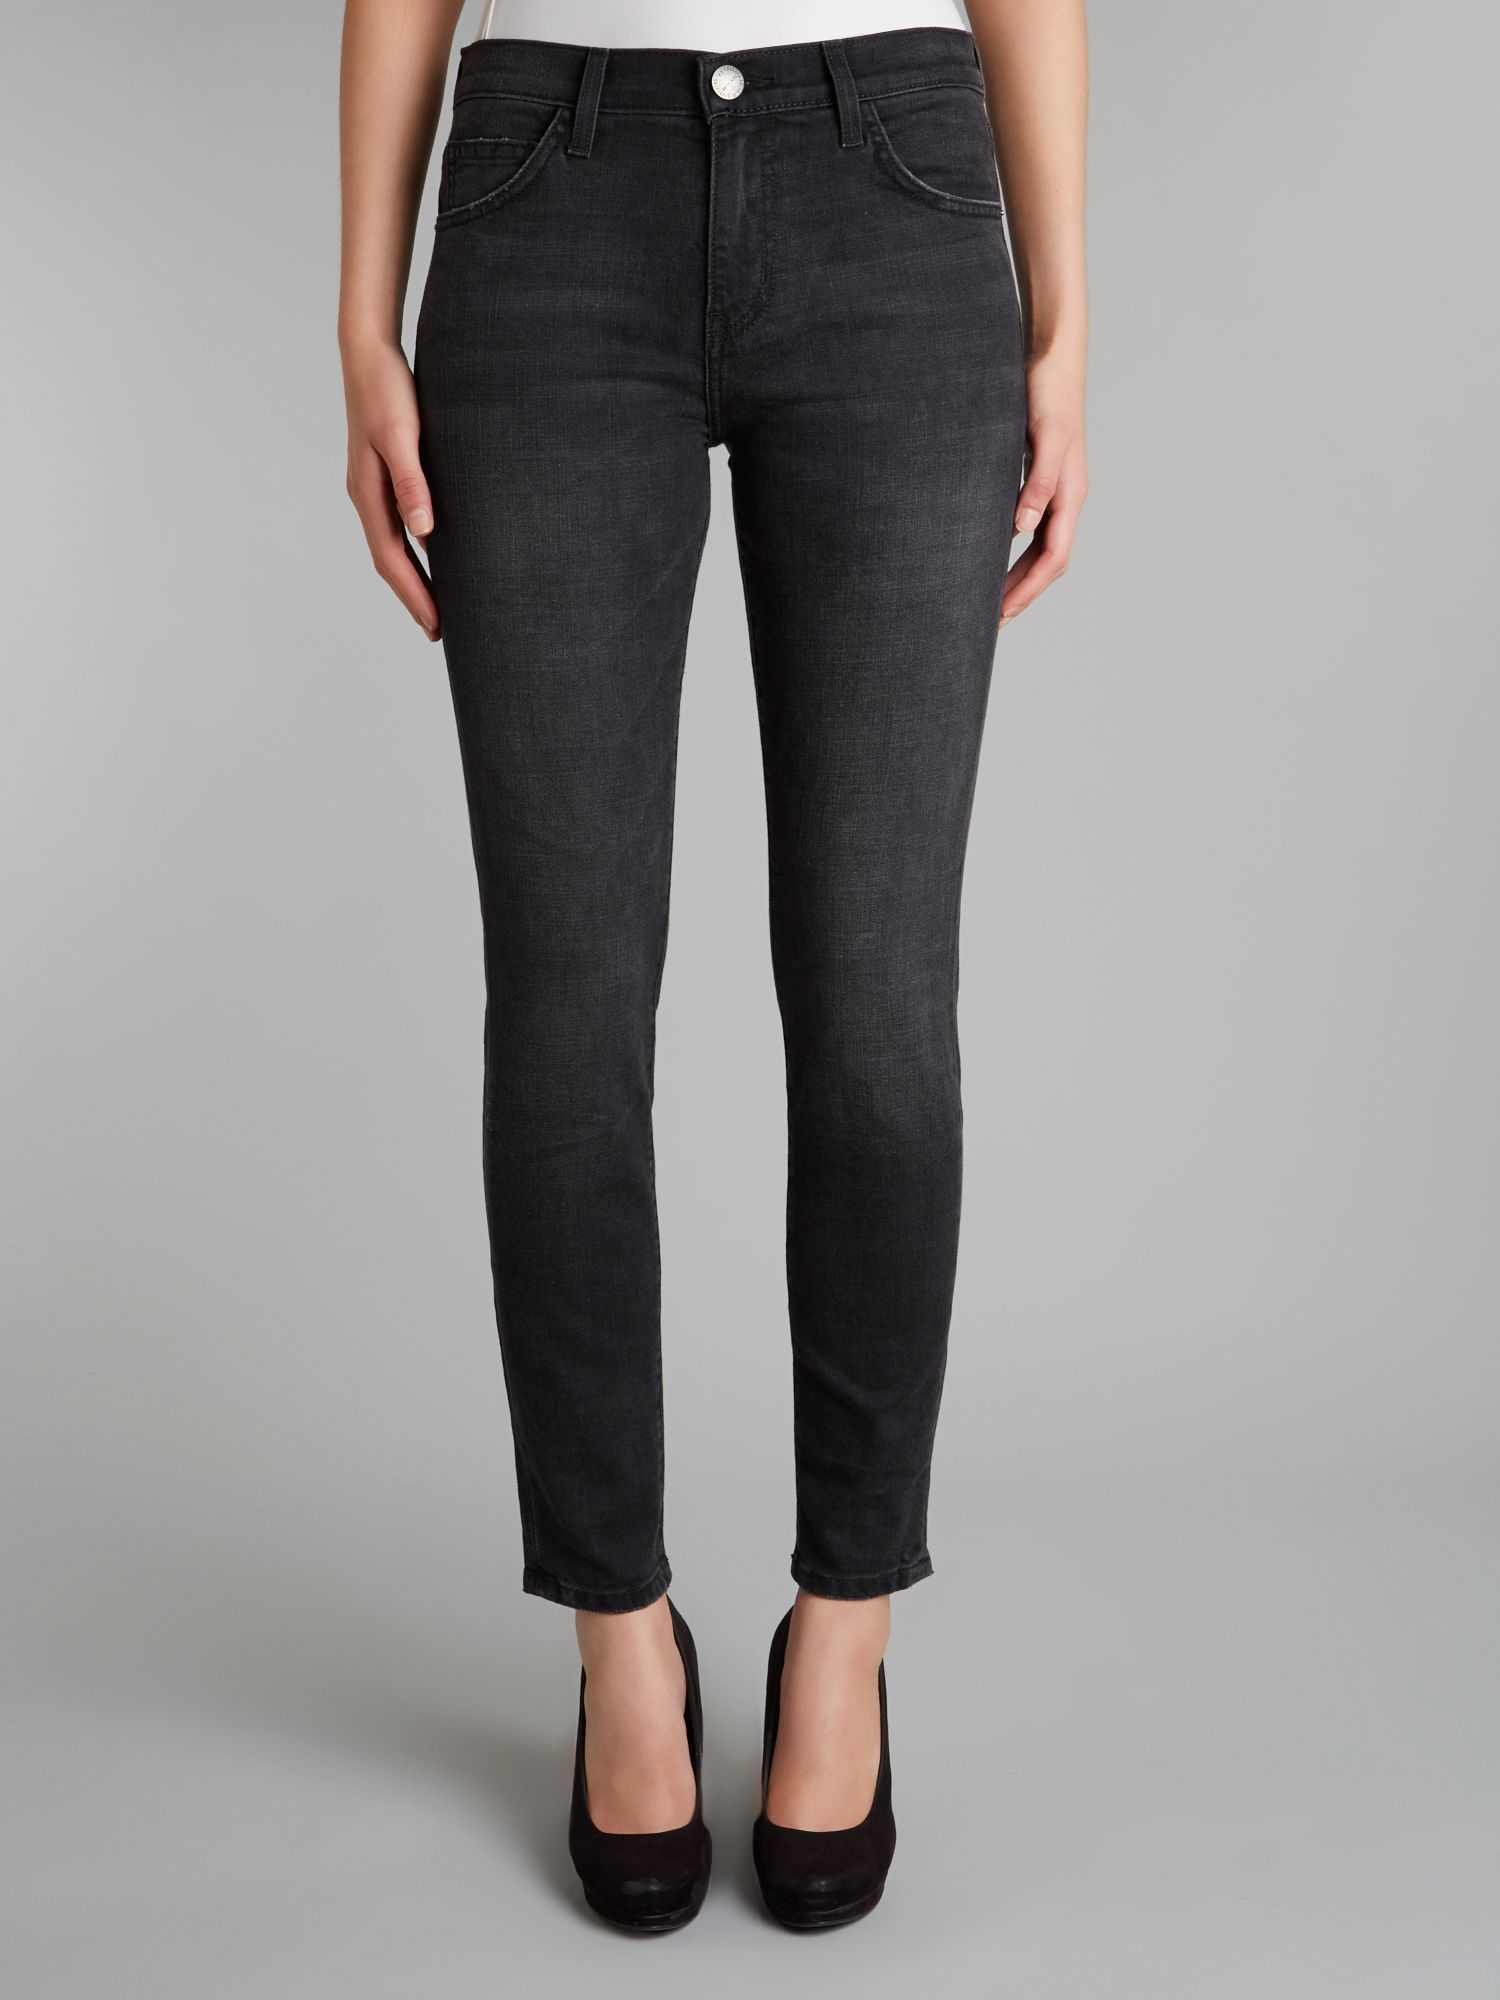 Current/Elliott Denim High Waist Ankle Skinny Jeans In Townhouse in Black